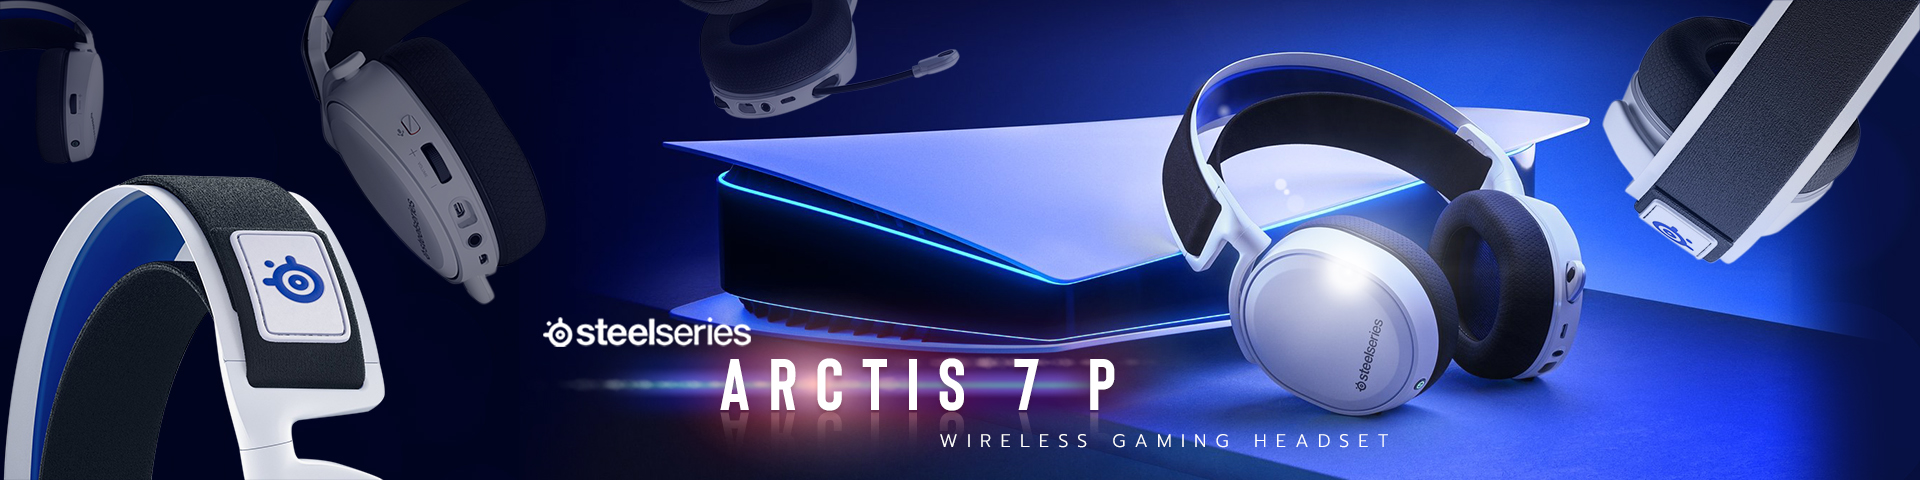 PlayStation Steelseries Arctis 7 P Wireless Gaming Headset for PlayStation